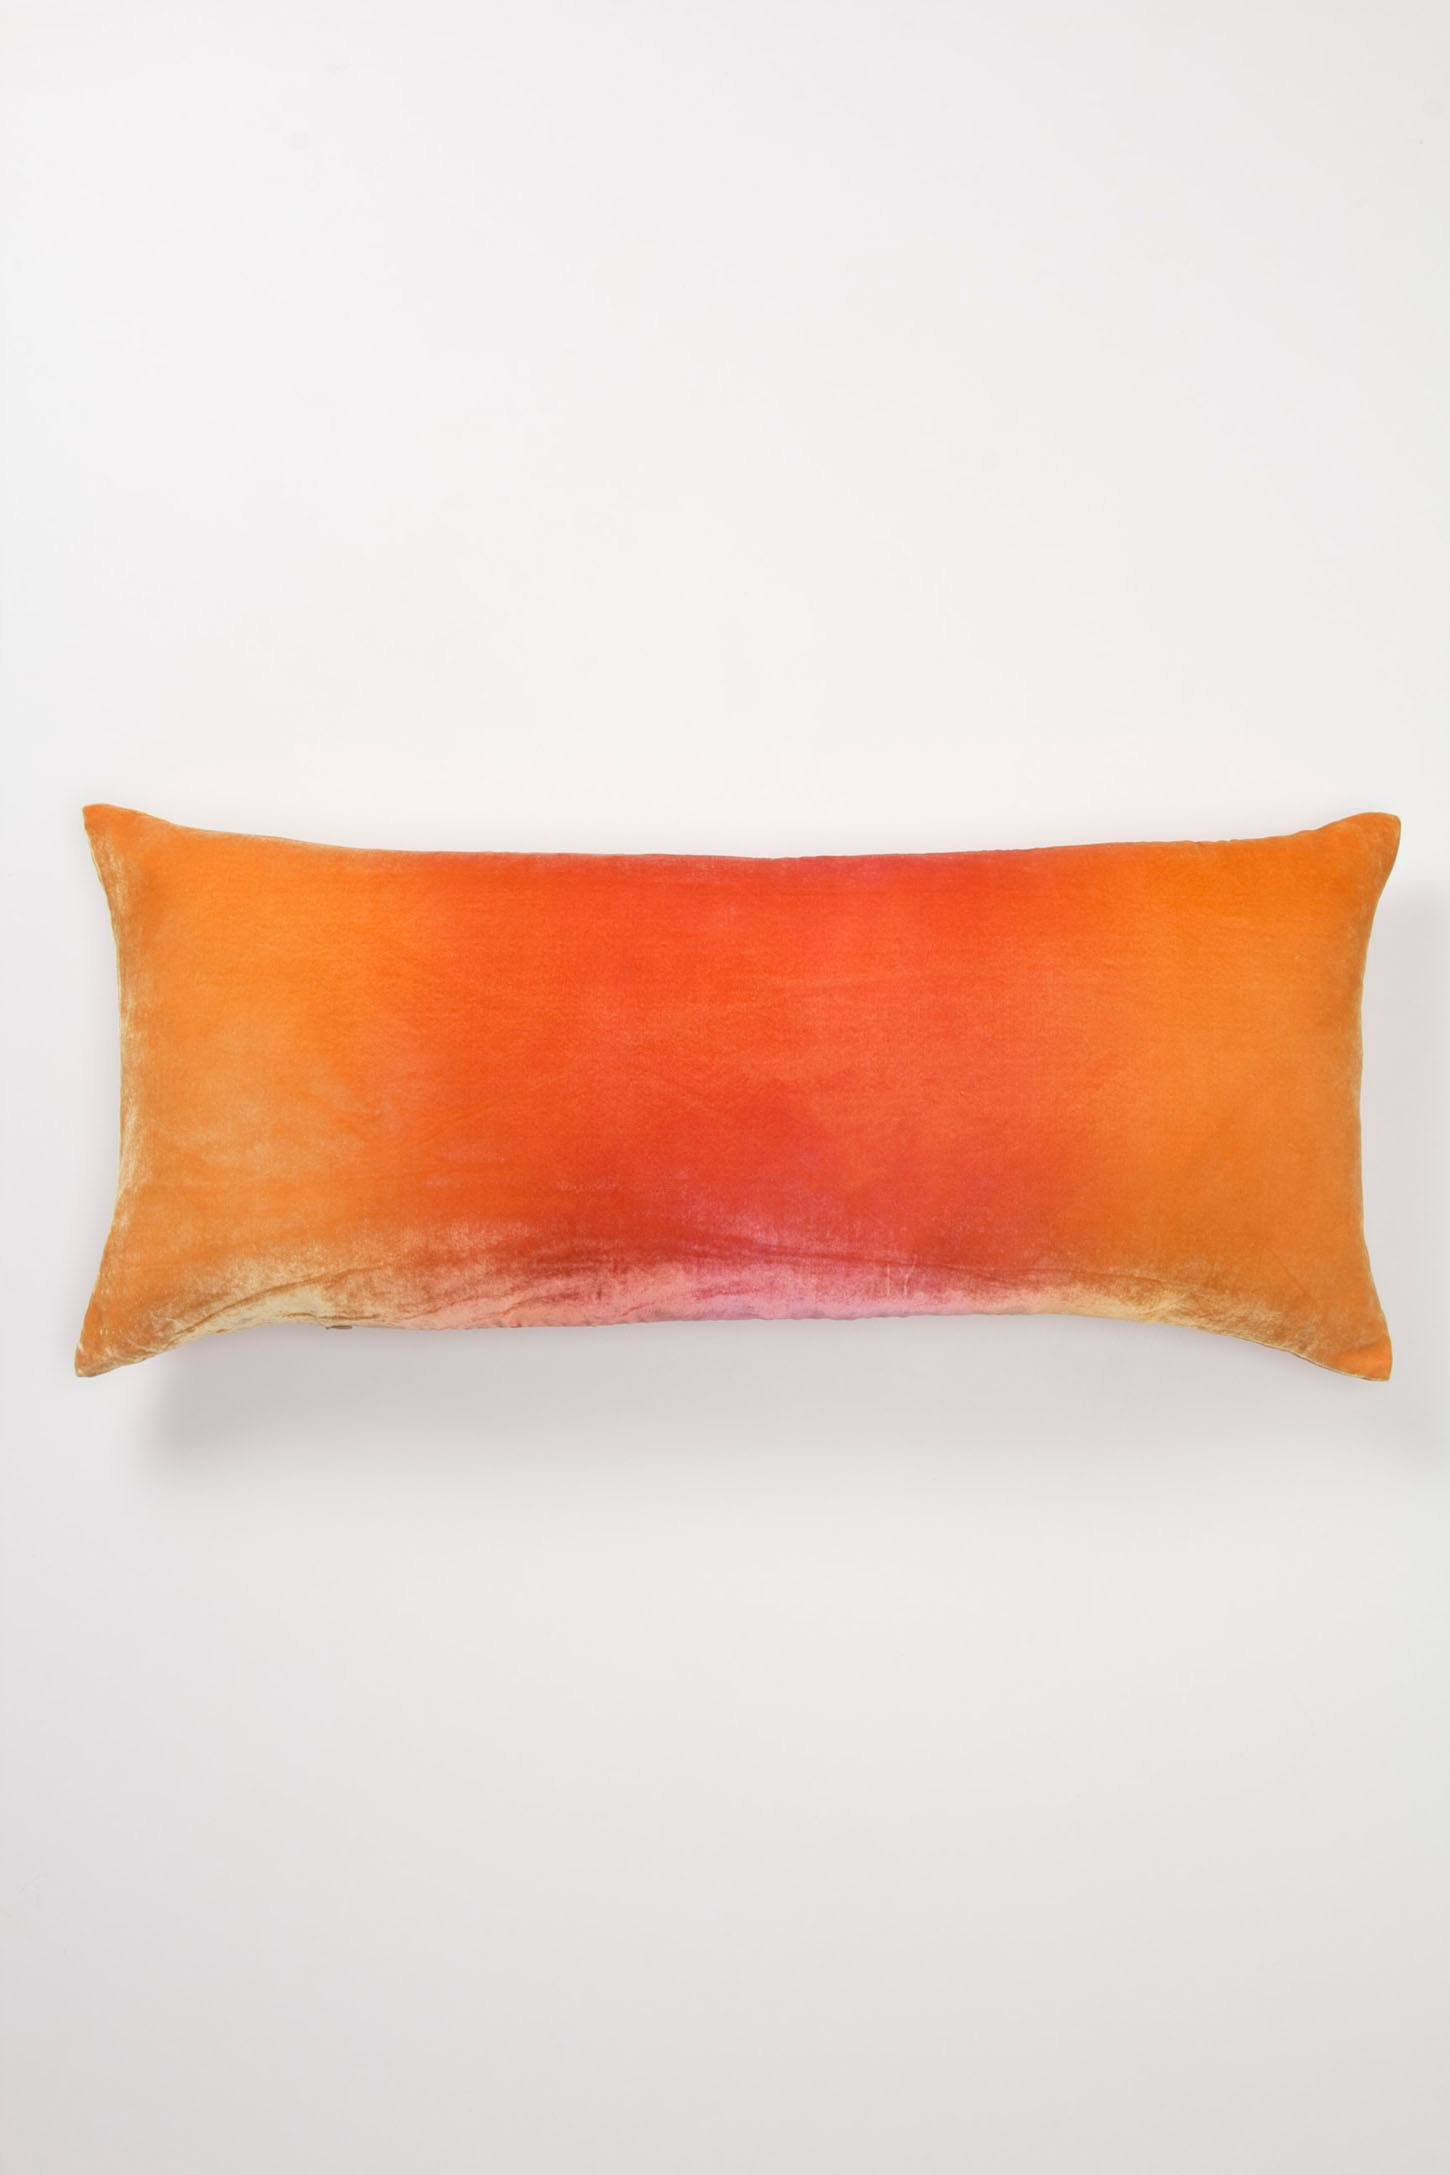 Rose Ombre Velvet Pillow